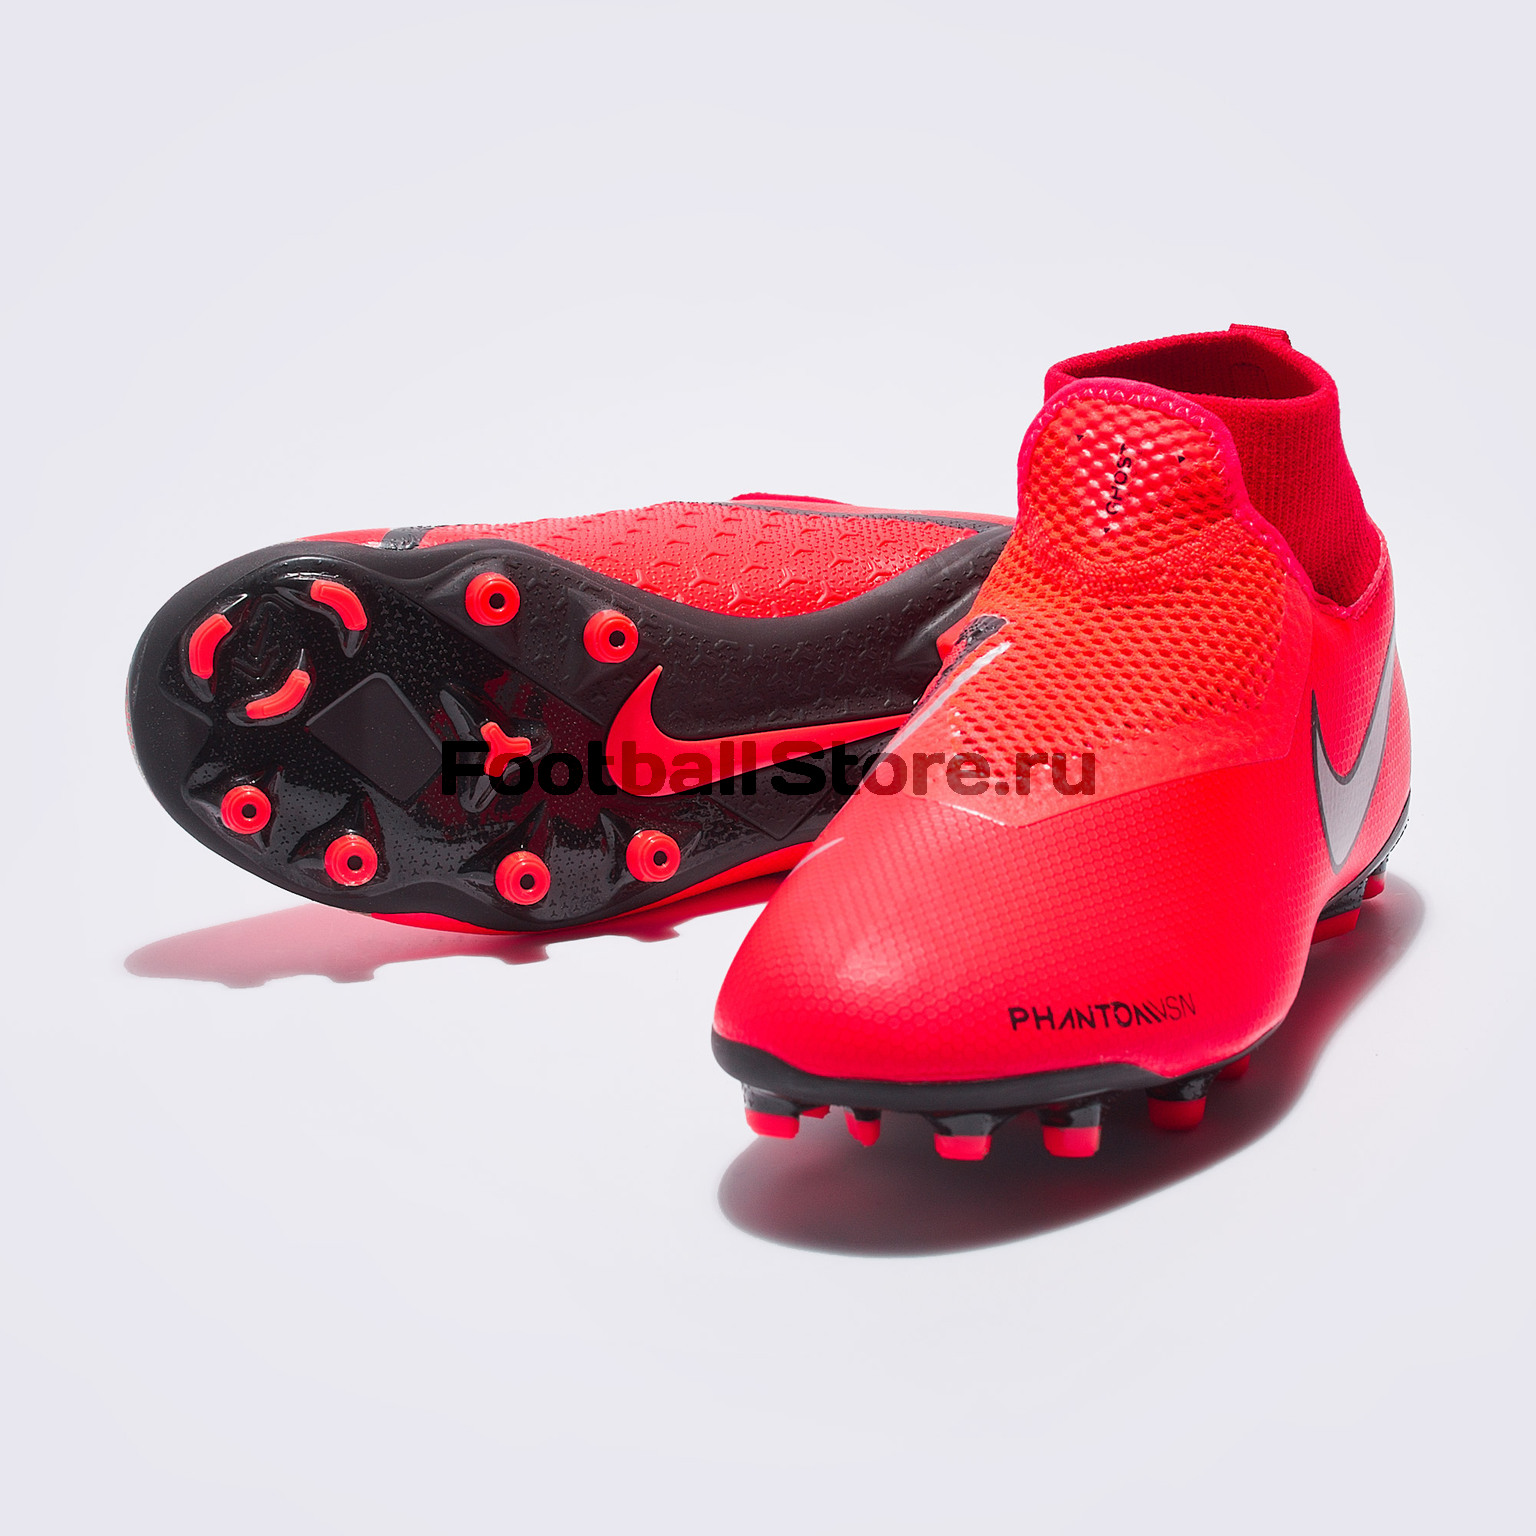 Бутсы детские Nike Phantom Vision Academy DF FG/MG AO3287-600 бутсы детские nike superfly academy gs cr7 fg mg aj3111 600